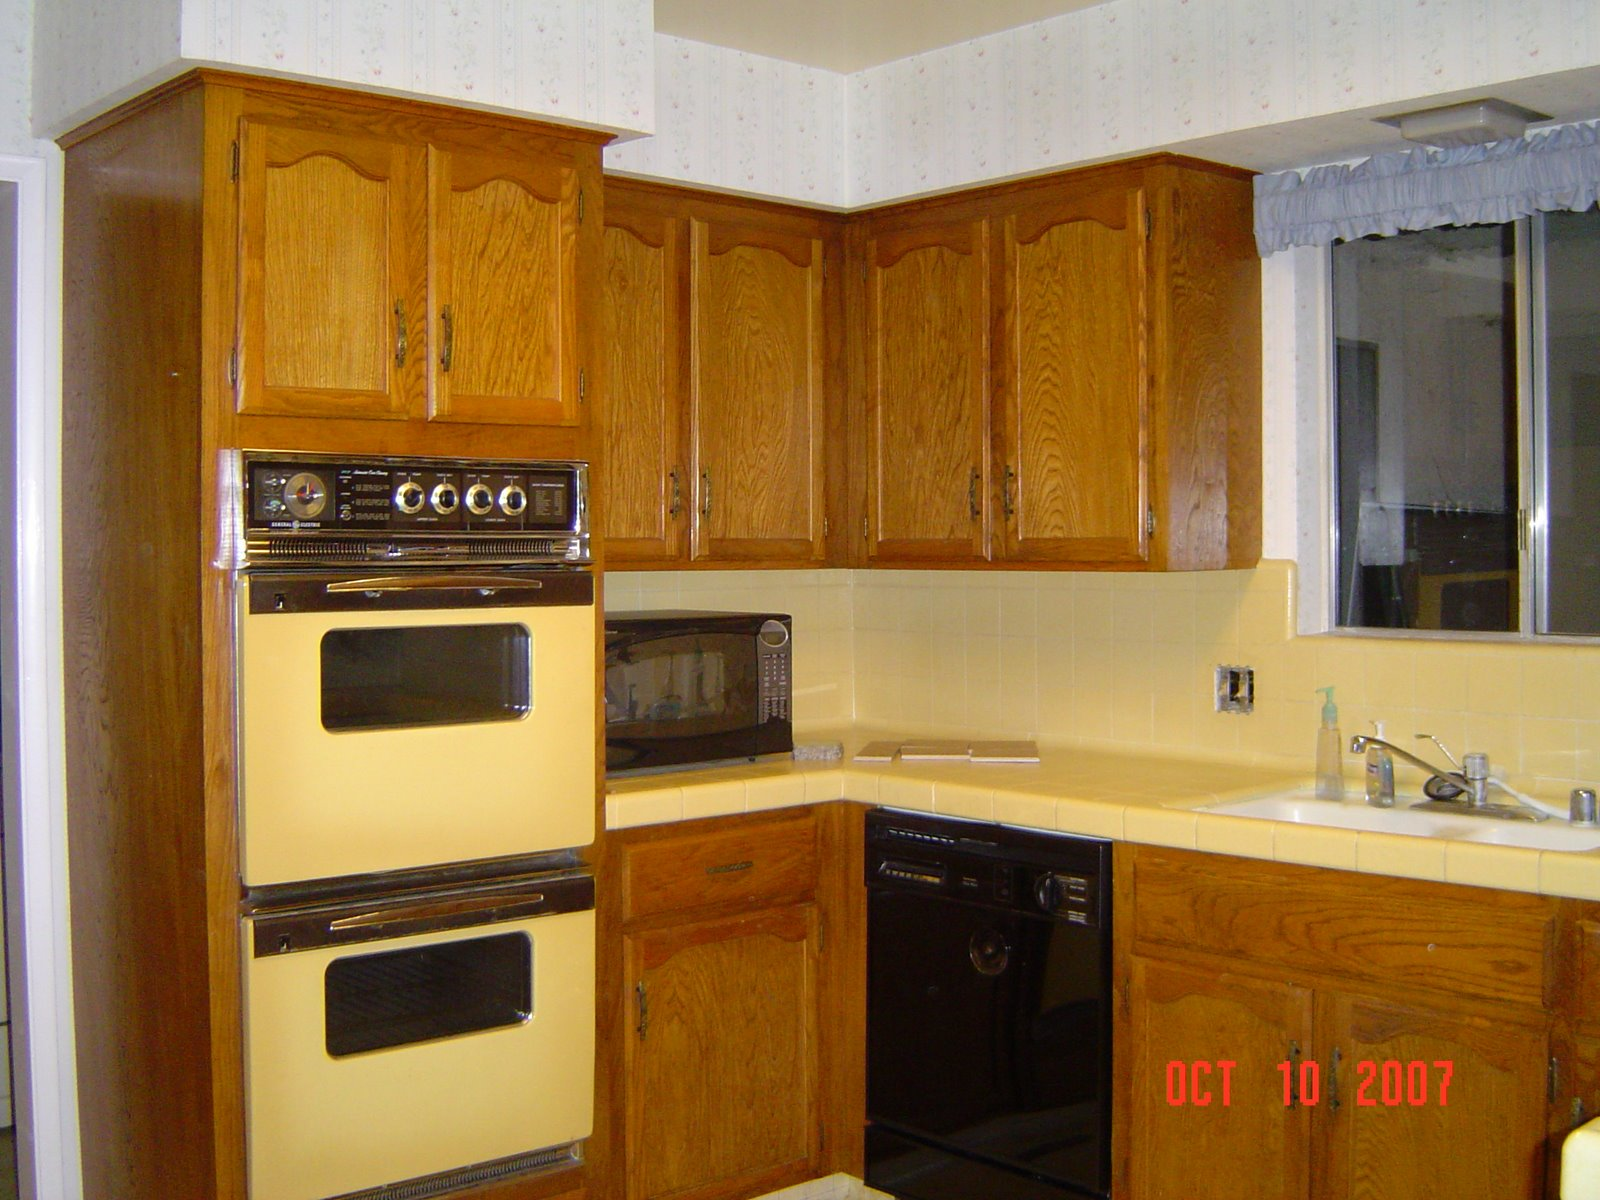 70s style kitchen home design and decor reviews